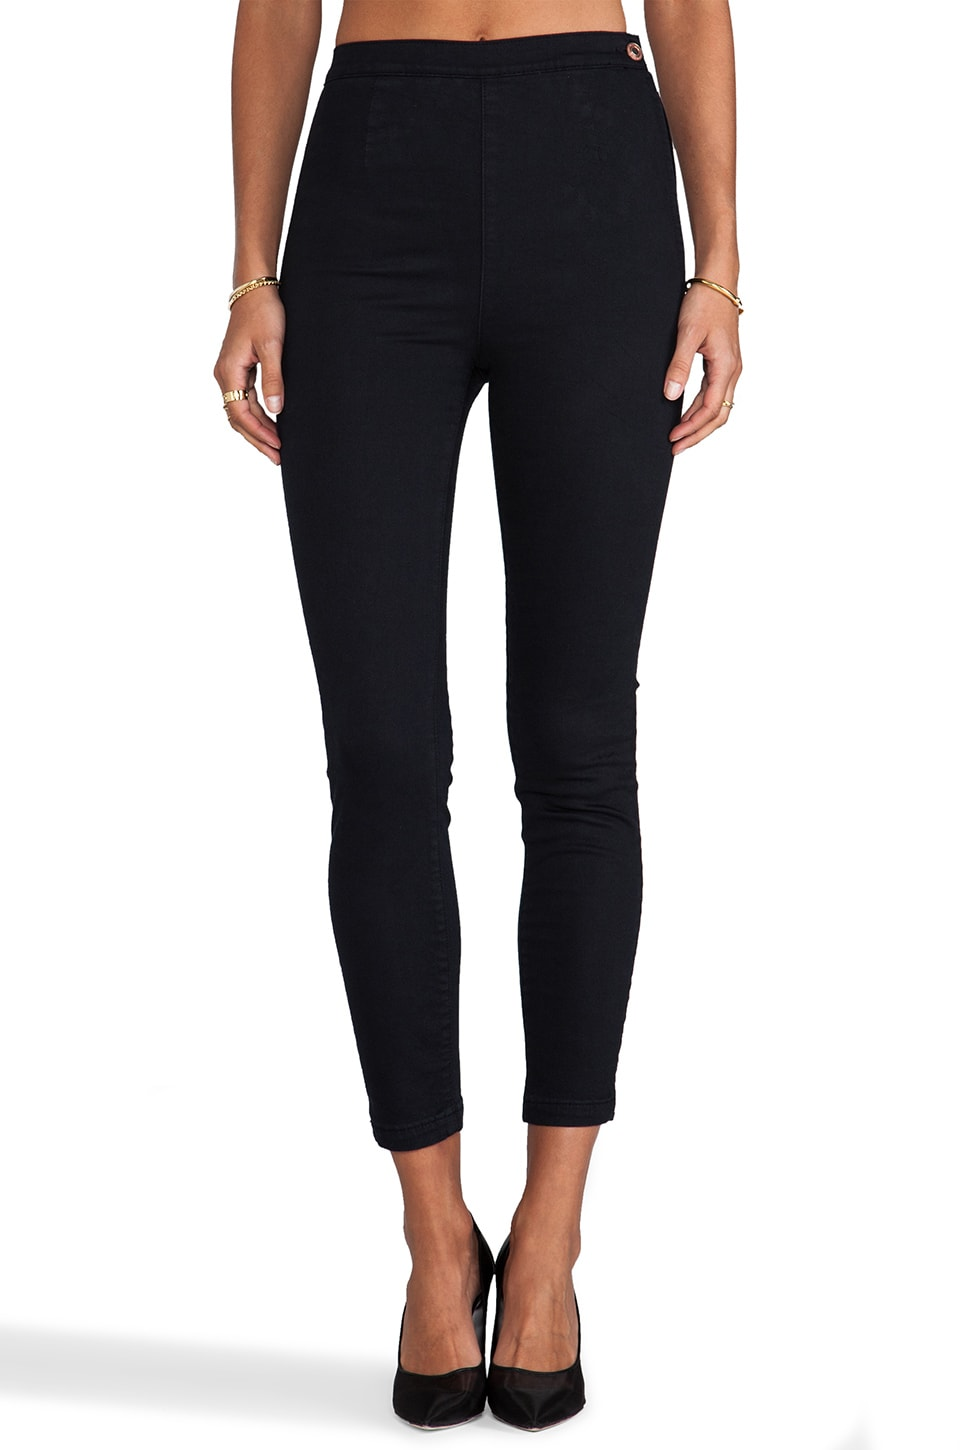 NEUW Daisy Skinny Jean in Atomic Black